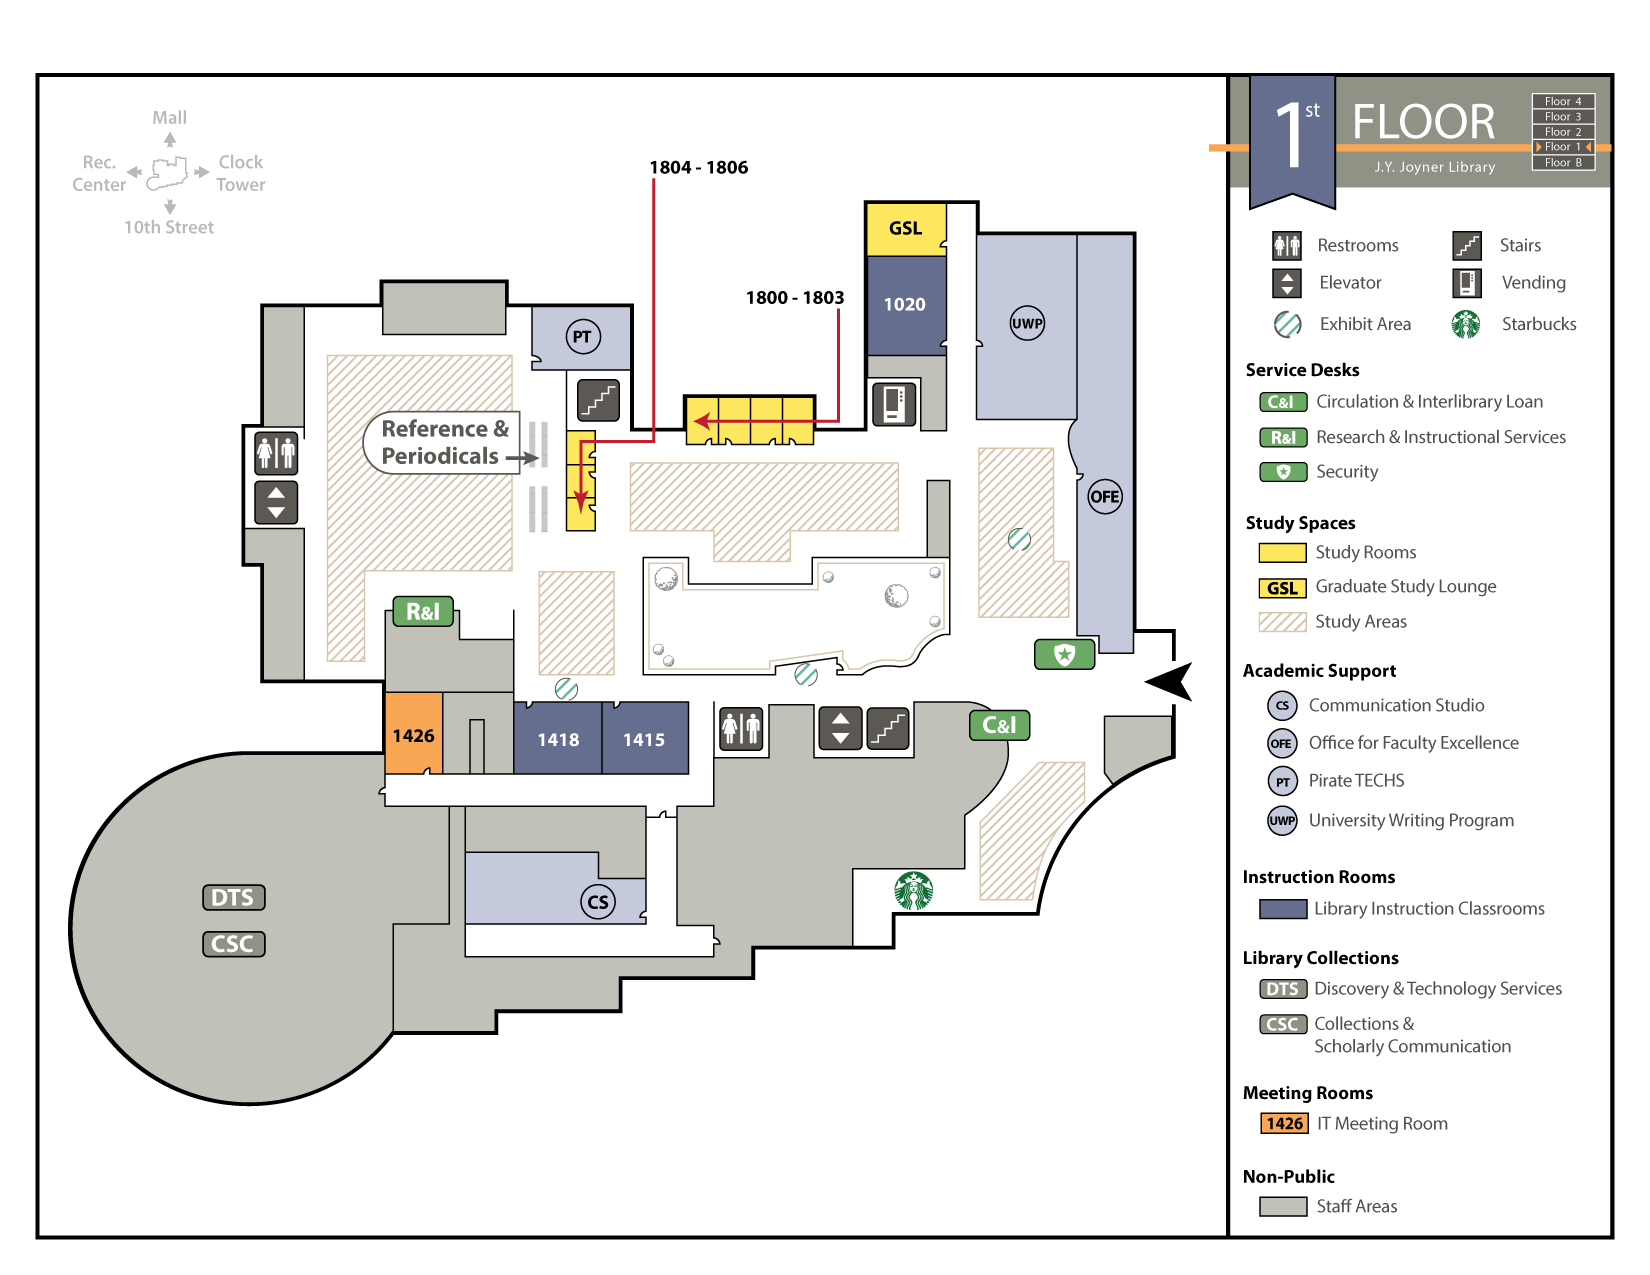 Joyner Library First Floor Map